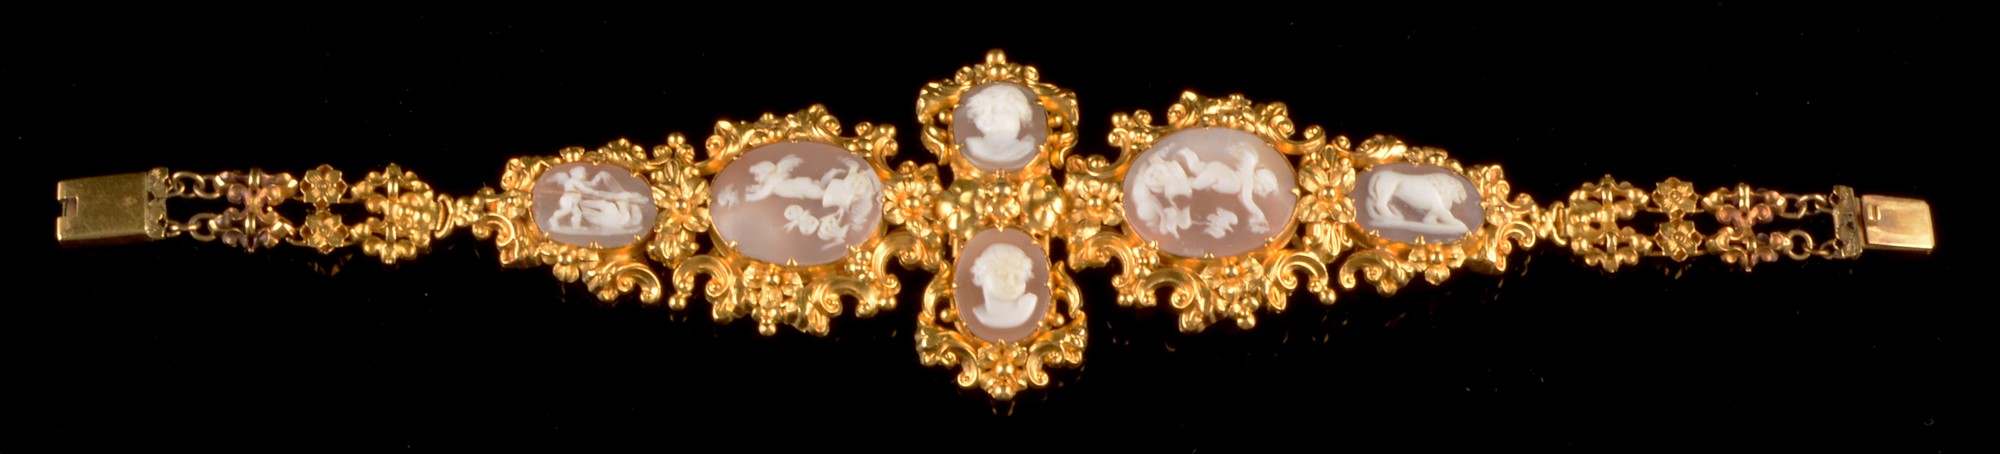 Lot 534 - Cameo and gold bracelet